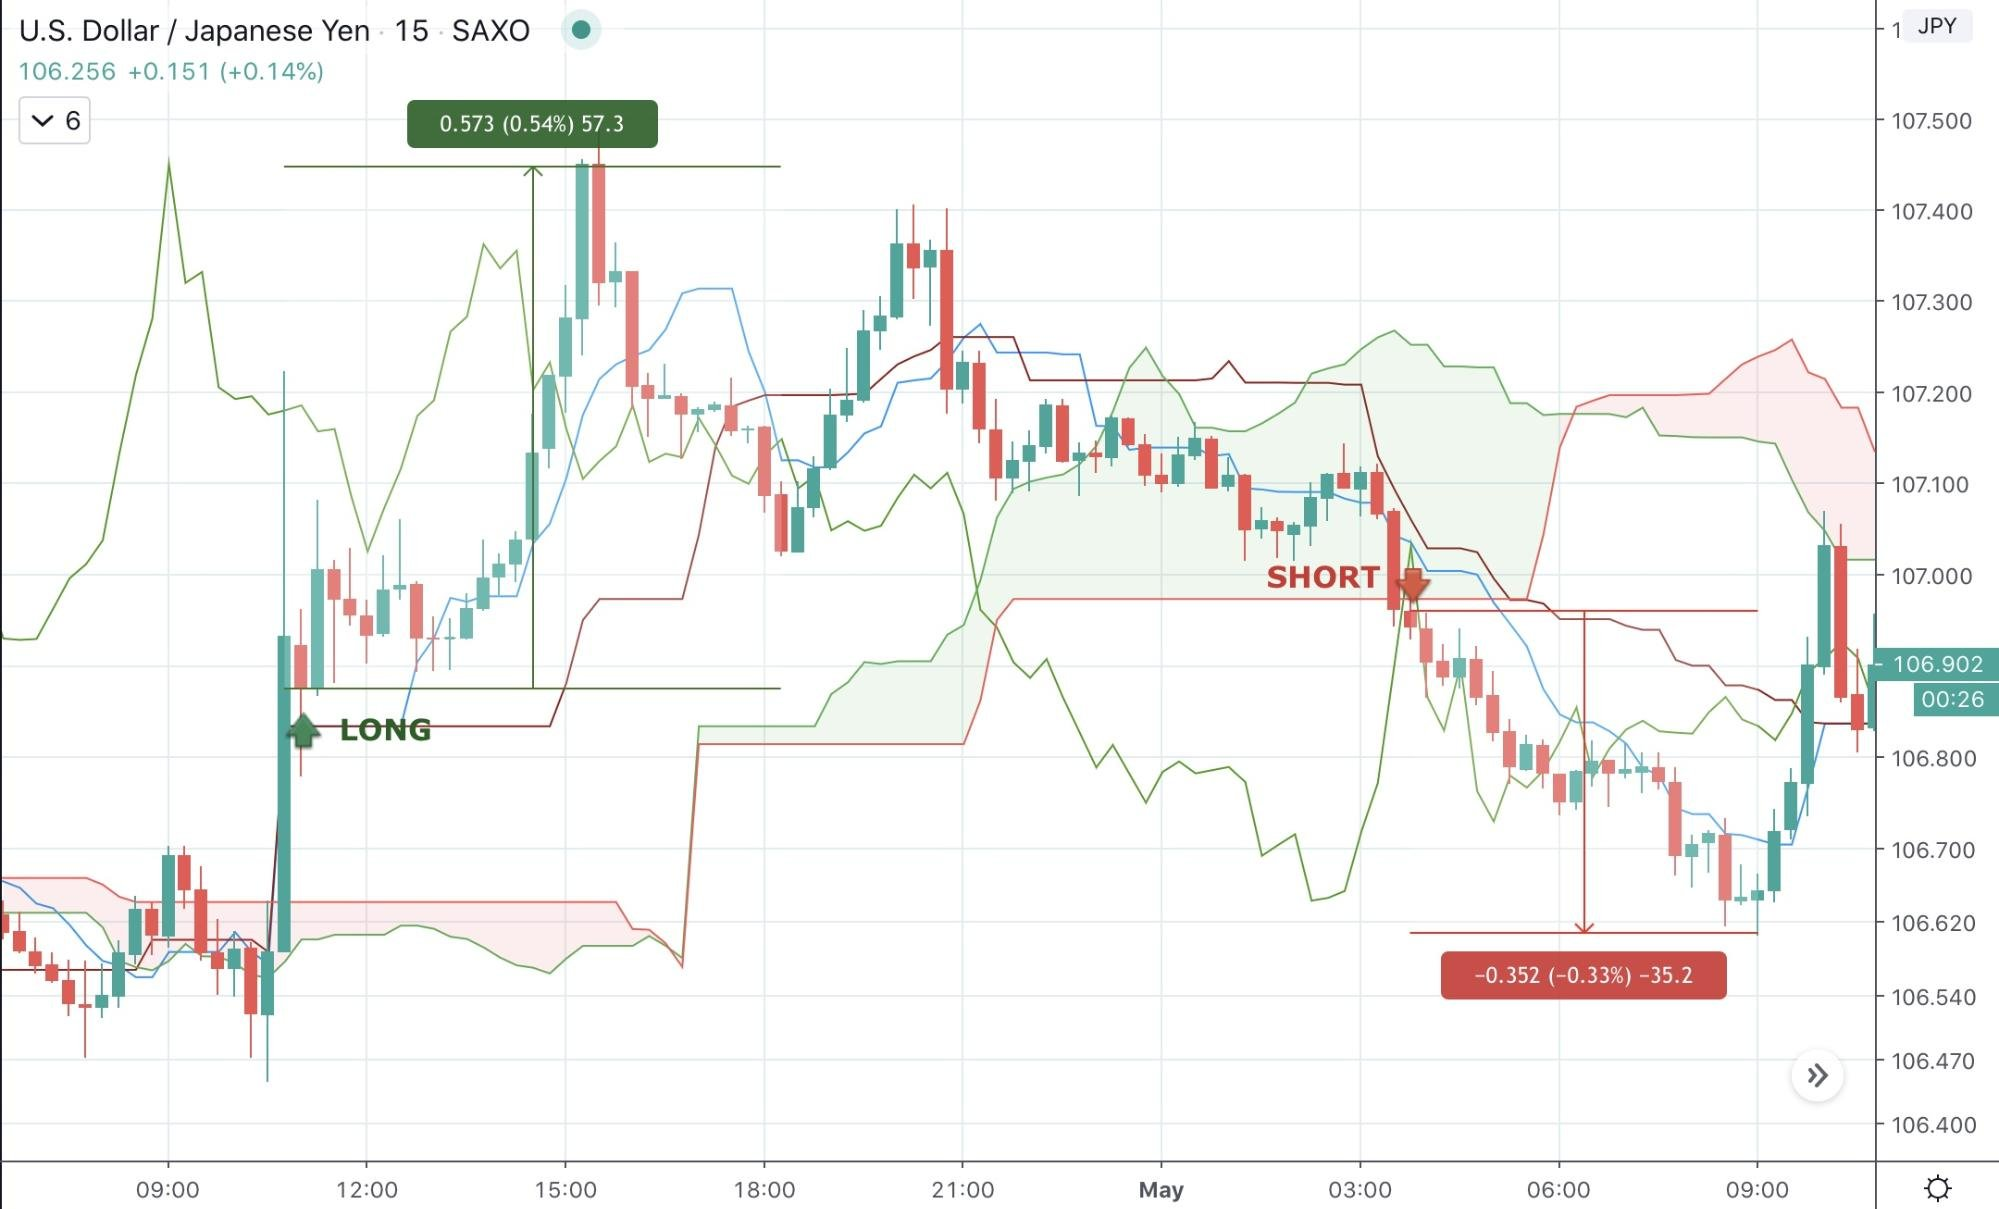 Best Intraday Trading Strategies 2020 - image2